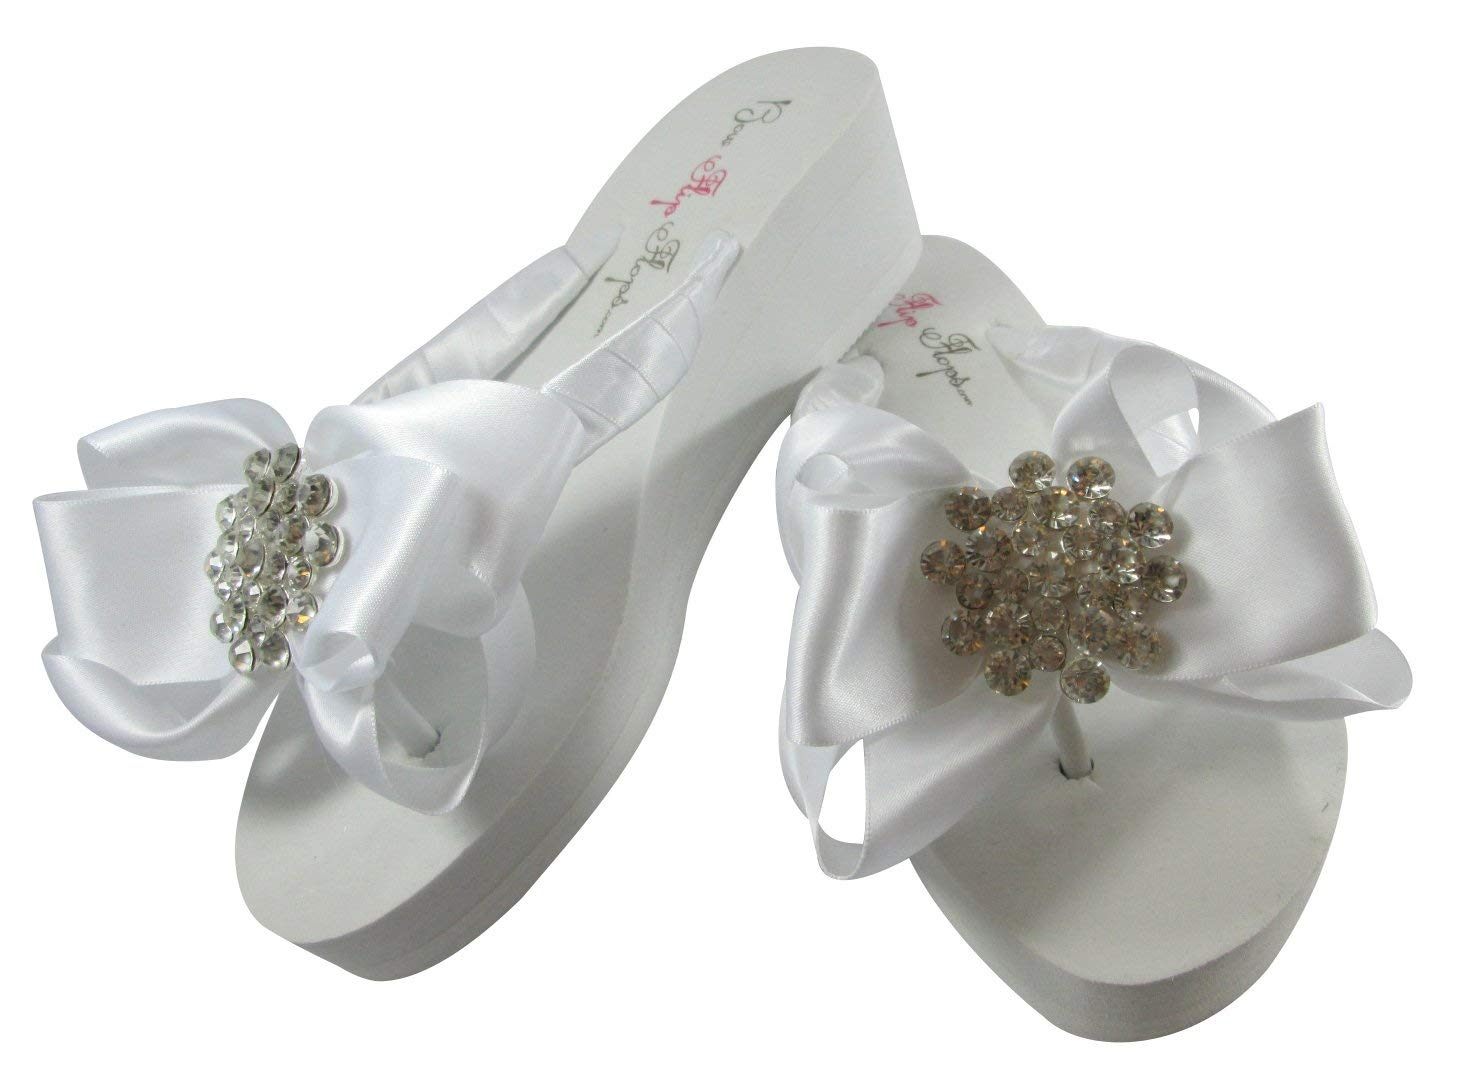 e7cc09bc39a56 Buy Bridal Flip Flops with I Do Glitter Satin Bows on White Flat ...